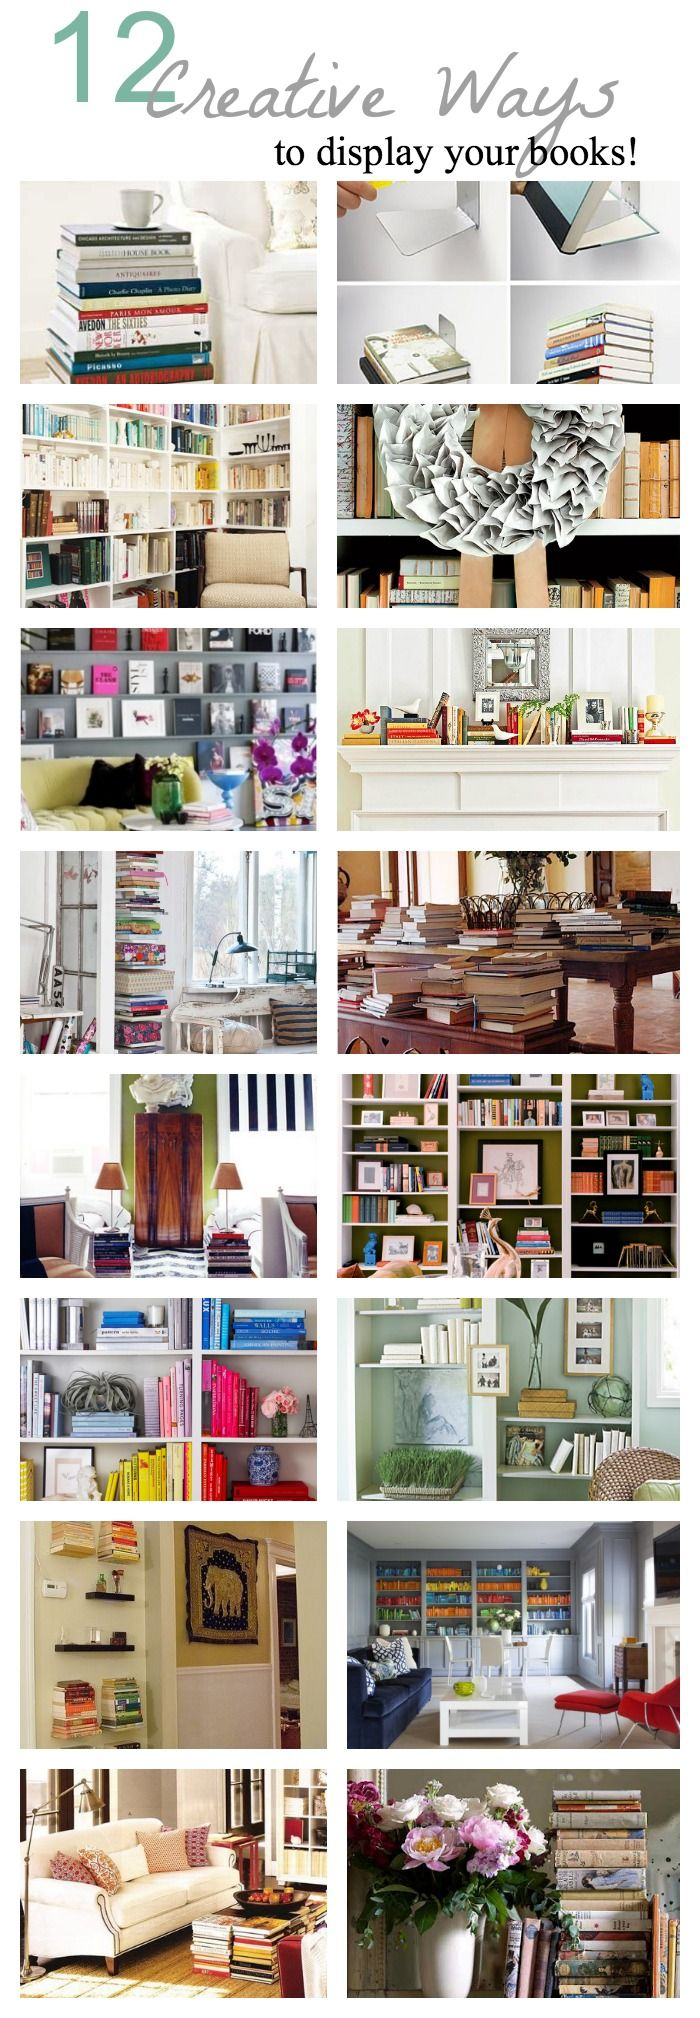 12 Creative ways to display your books!